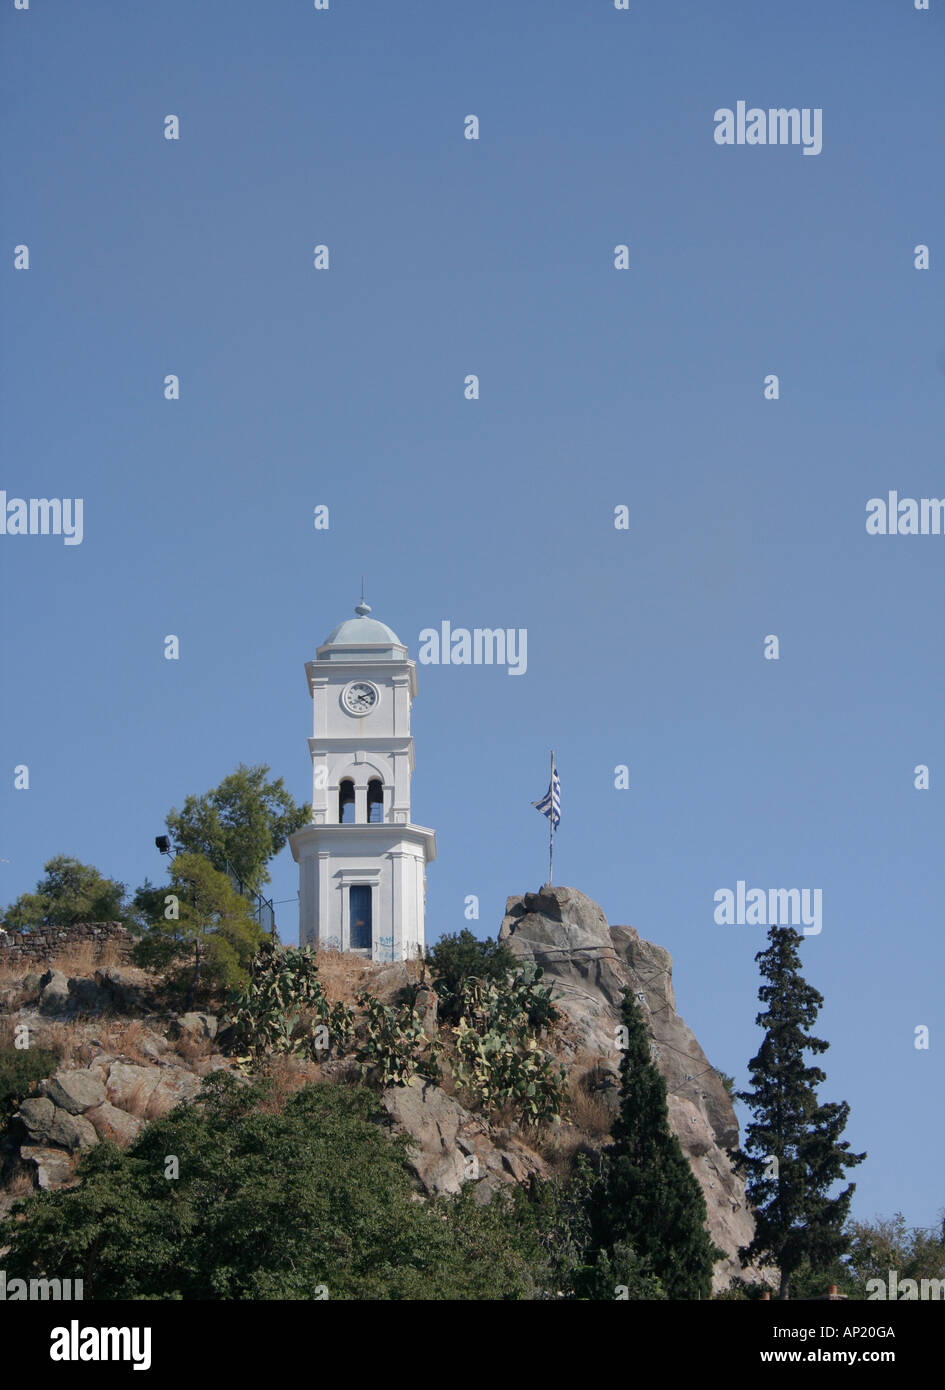 Clock Tower High on the hill on Poros Island - Stock Image